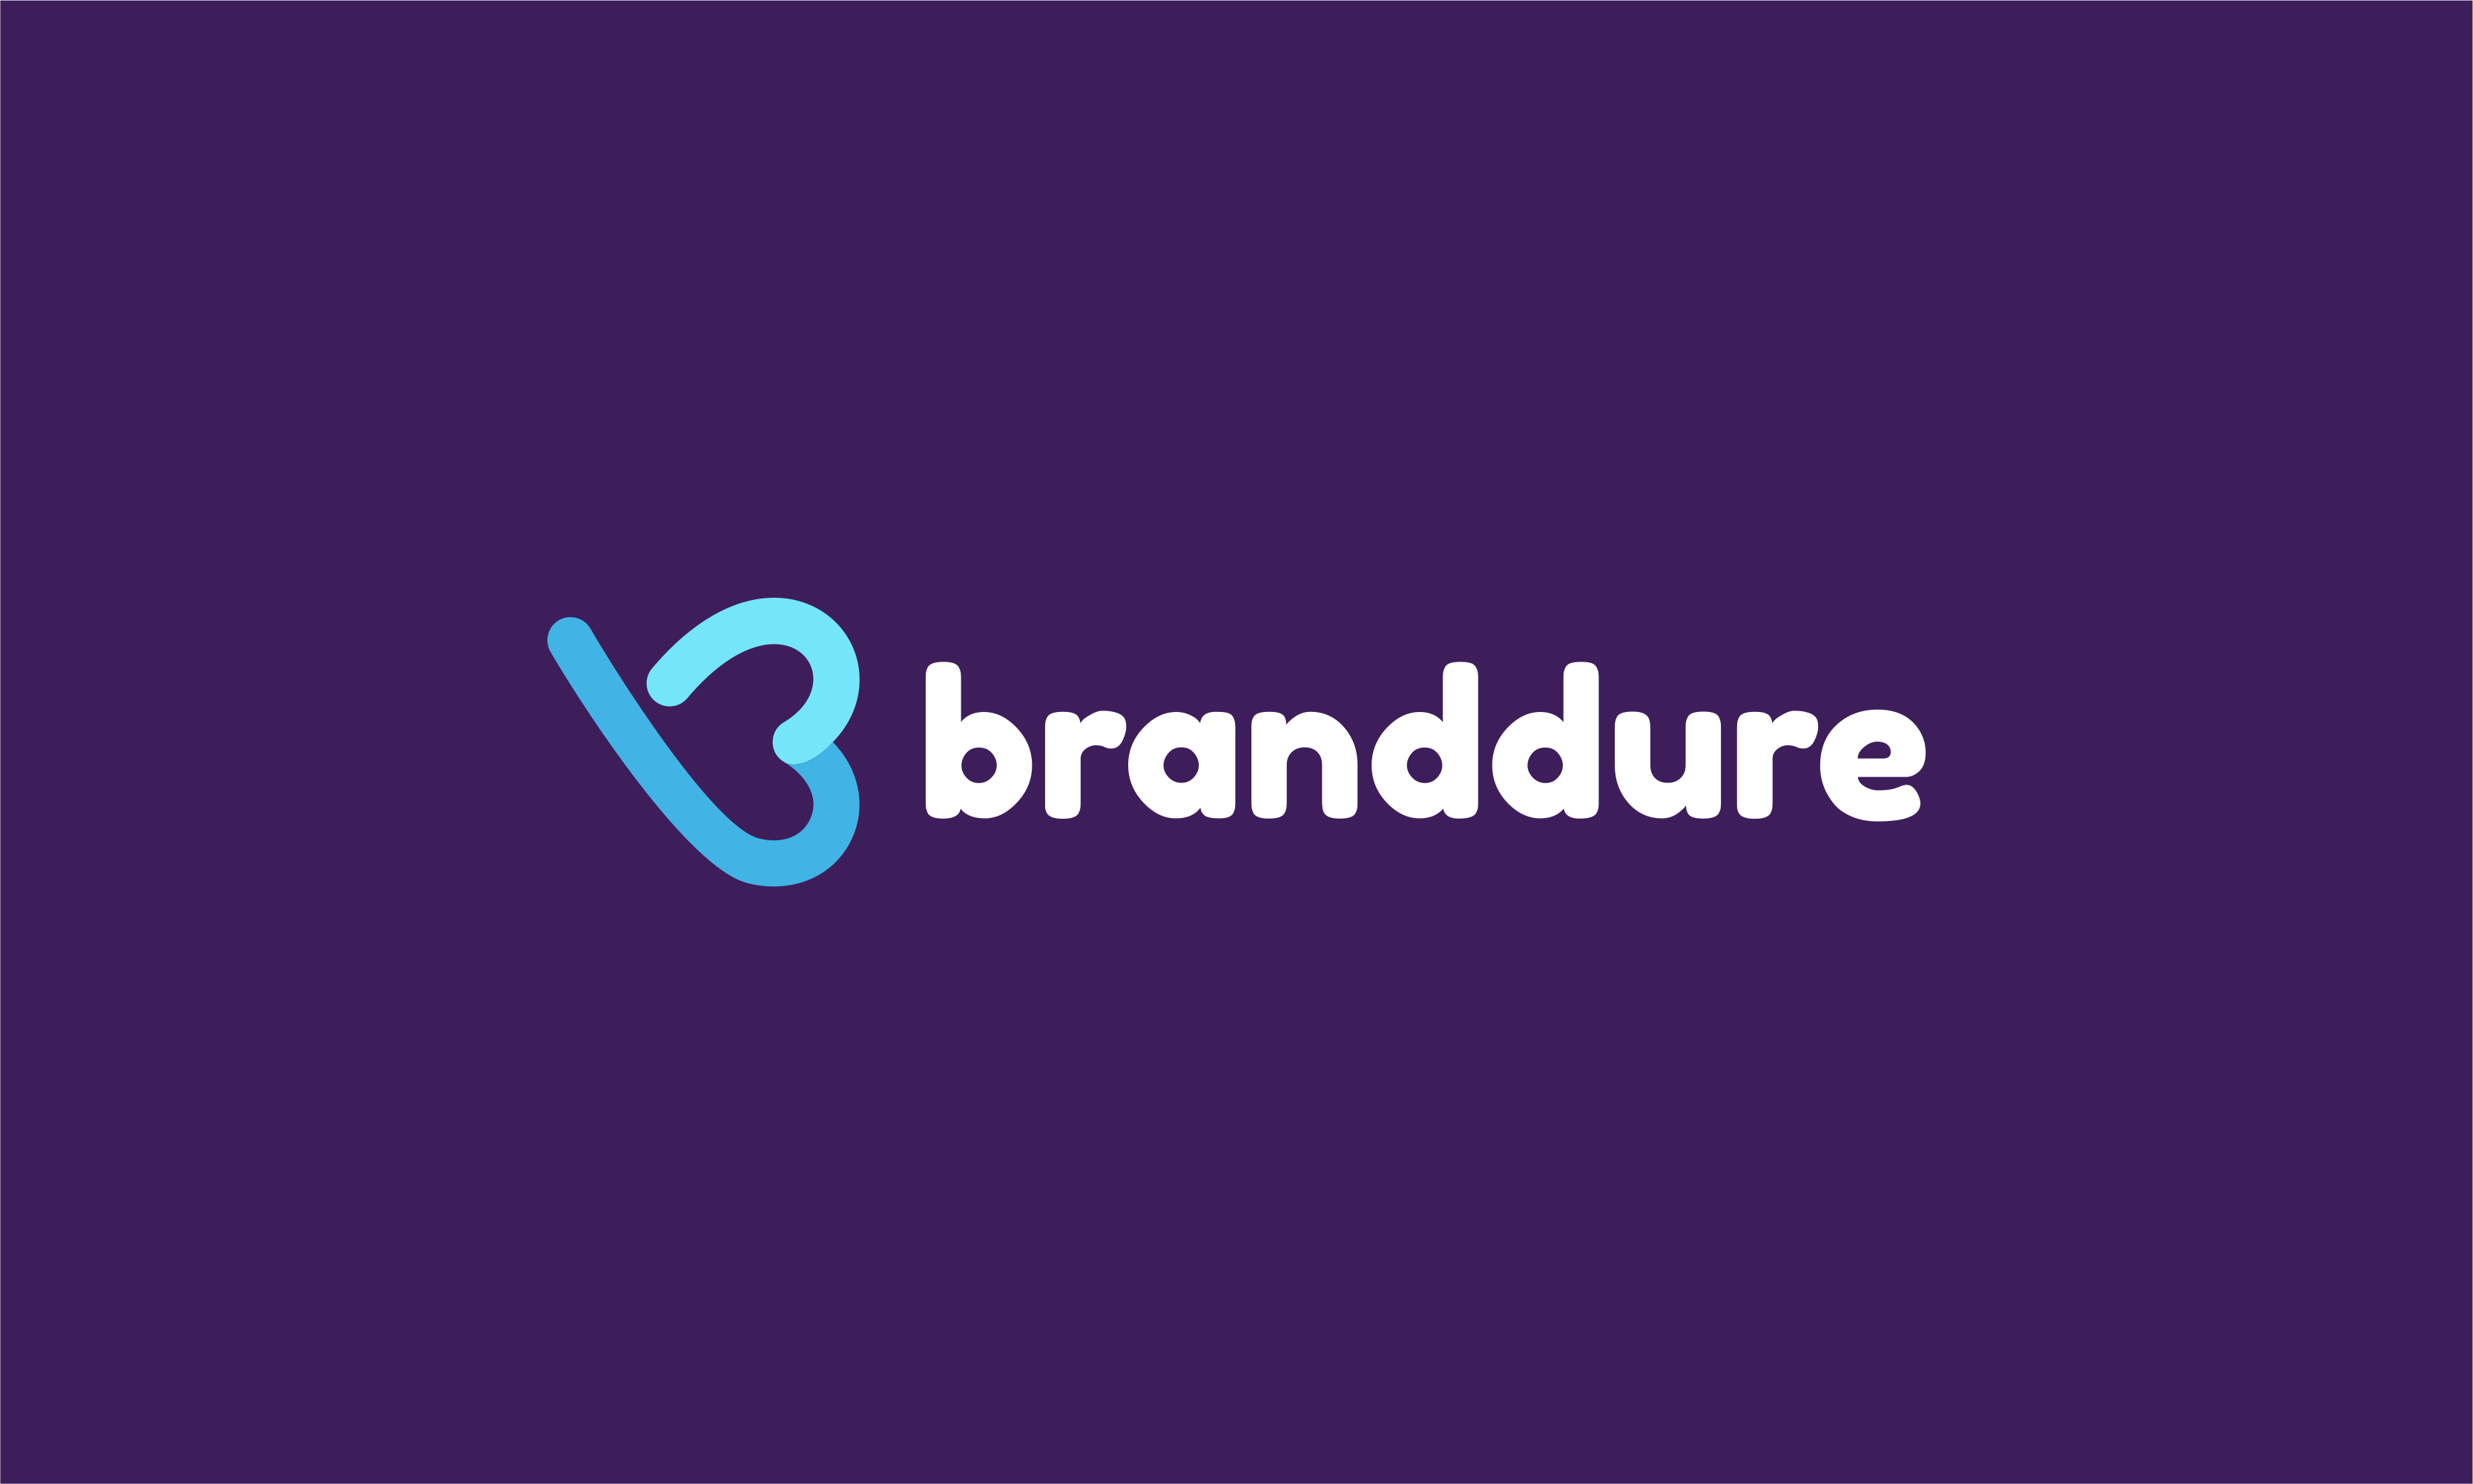 Branddure - Marketing company name for sale